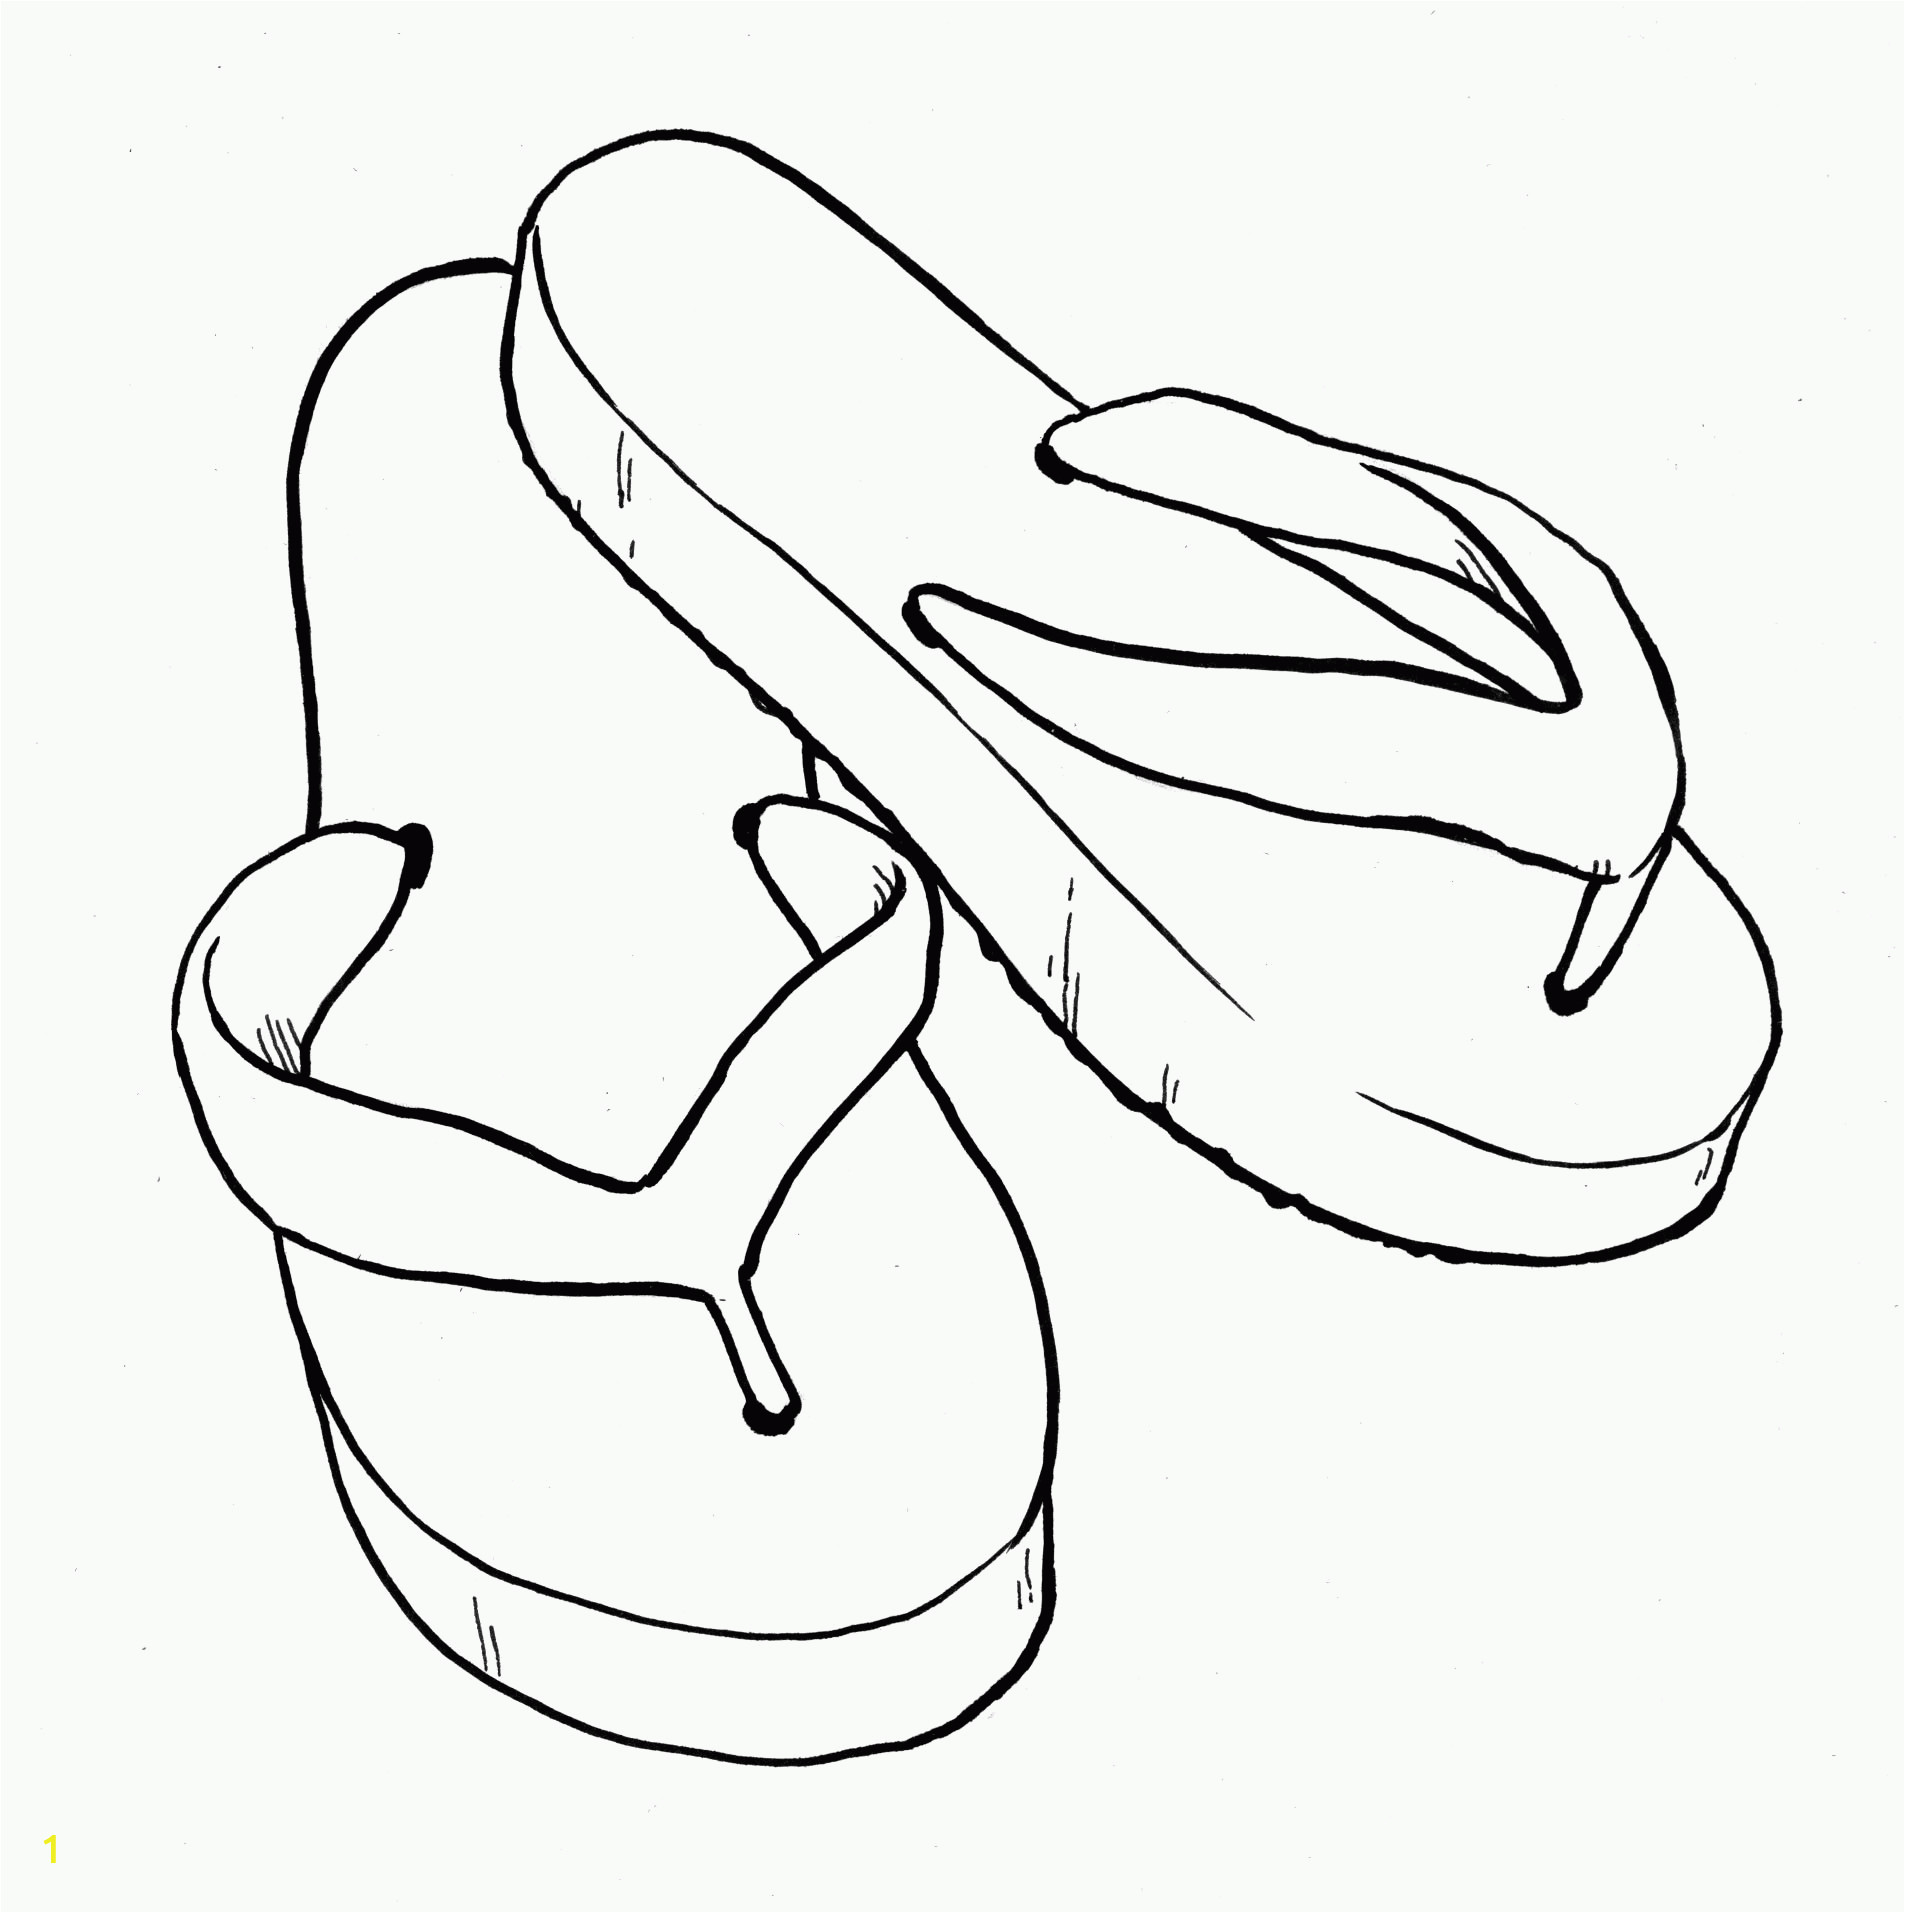 Flip Flop Coloring Pages for Kids Printable Coloring Pages Flip Flops Coloring Home